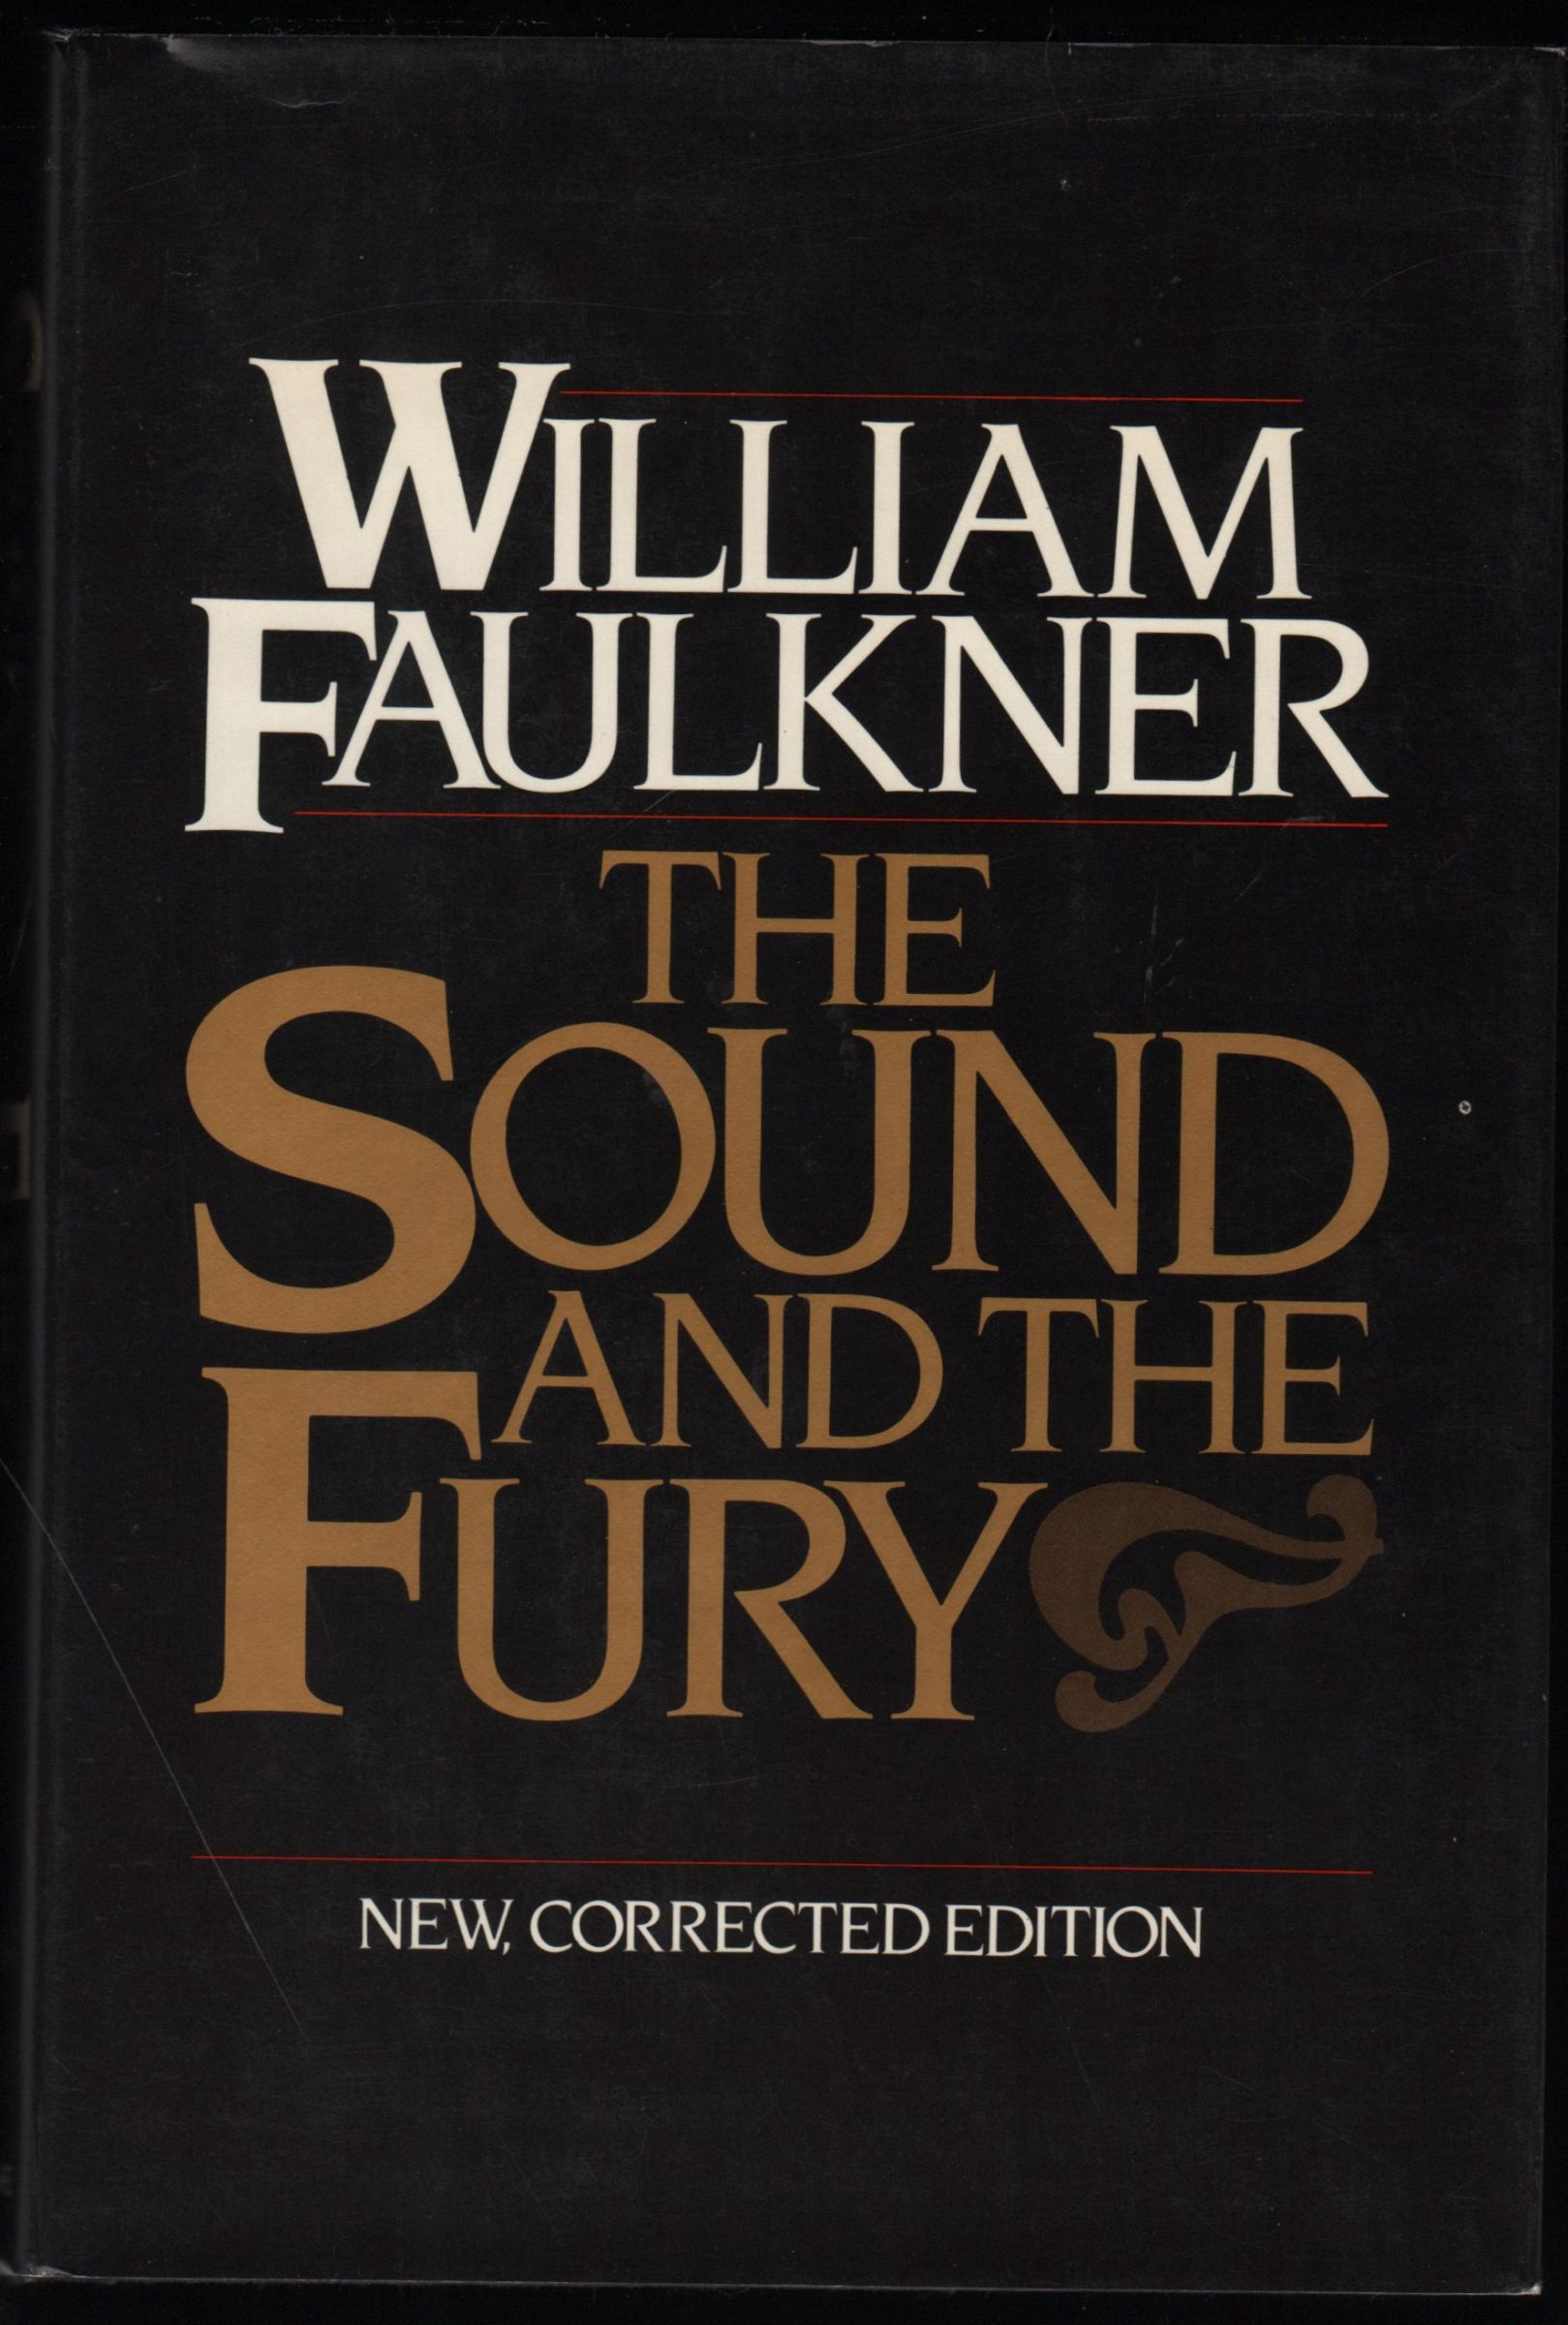 the sound and the fury by faulkner The sound and the fury is an american drama film directed by james franco it is the second film version of the novel of the same name by william faulkner the previous adaptation, directed by martin ritt, was released in 1959.